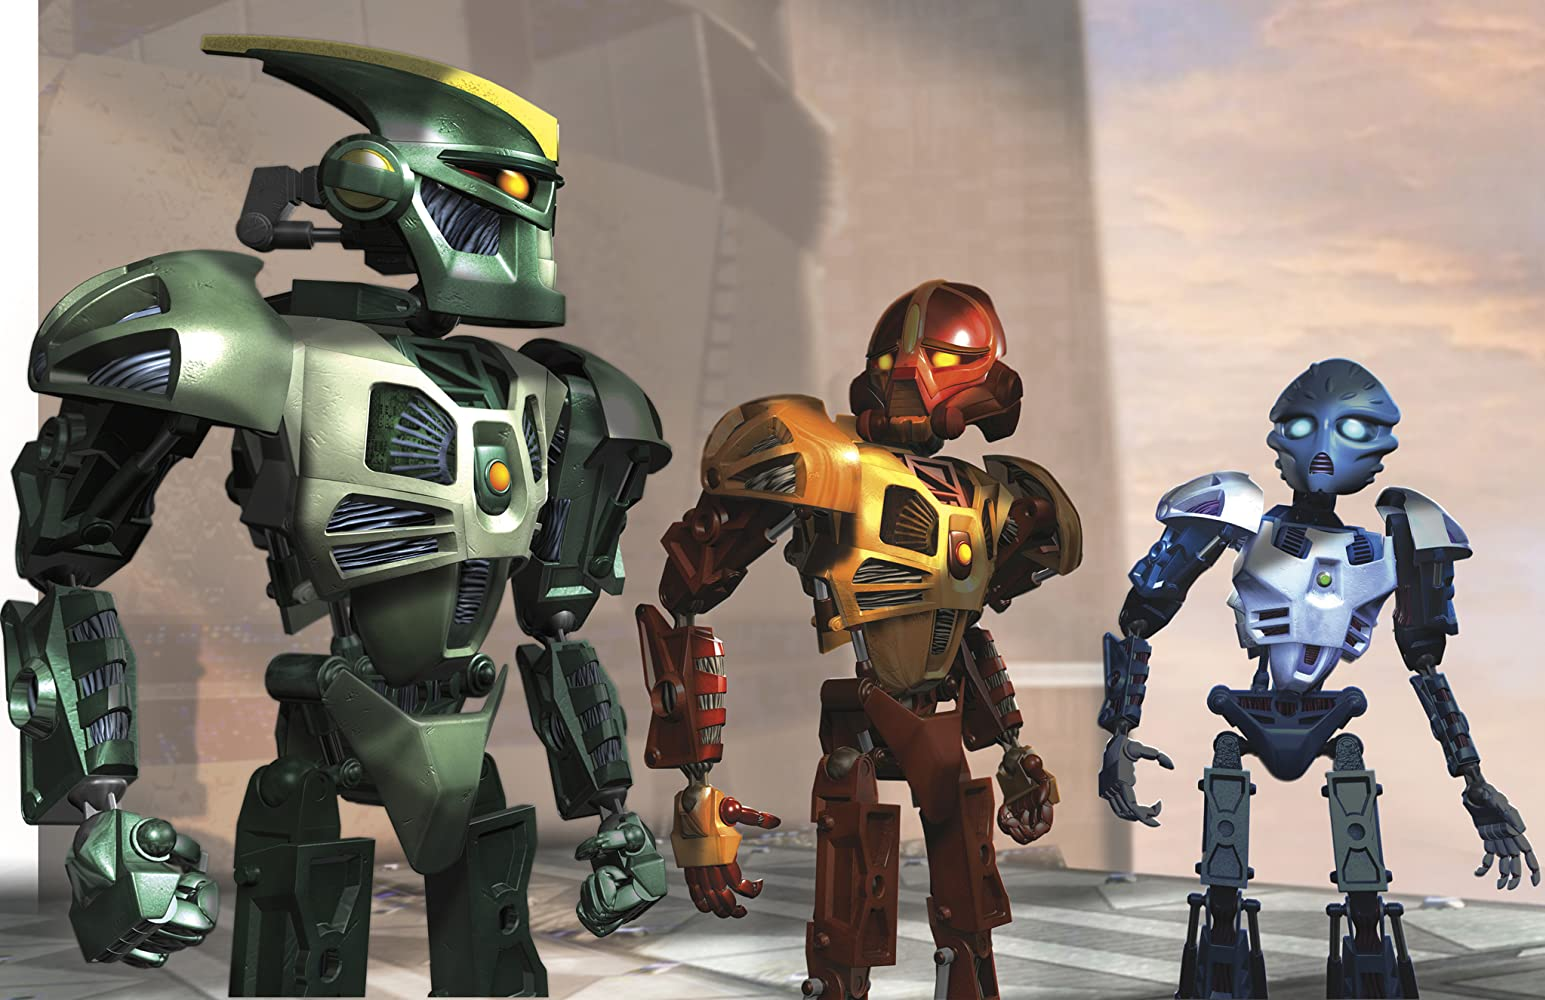 Bionicle 2: Legends of Metru Nui (2004)